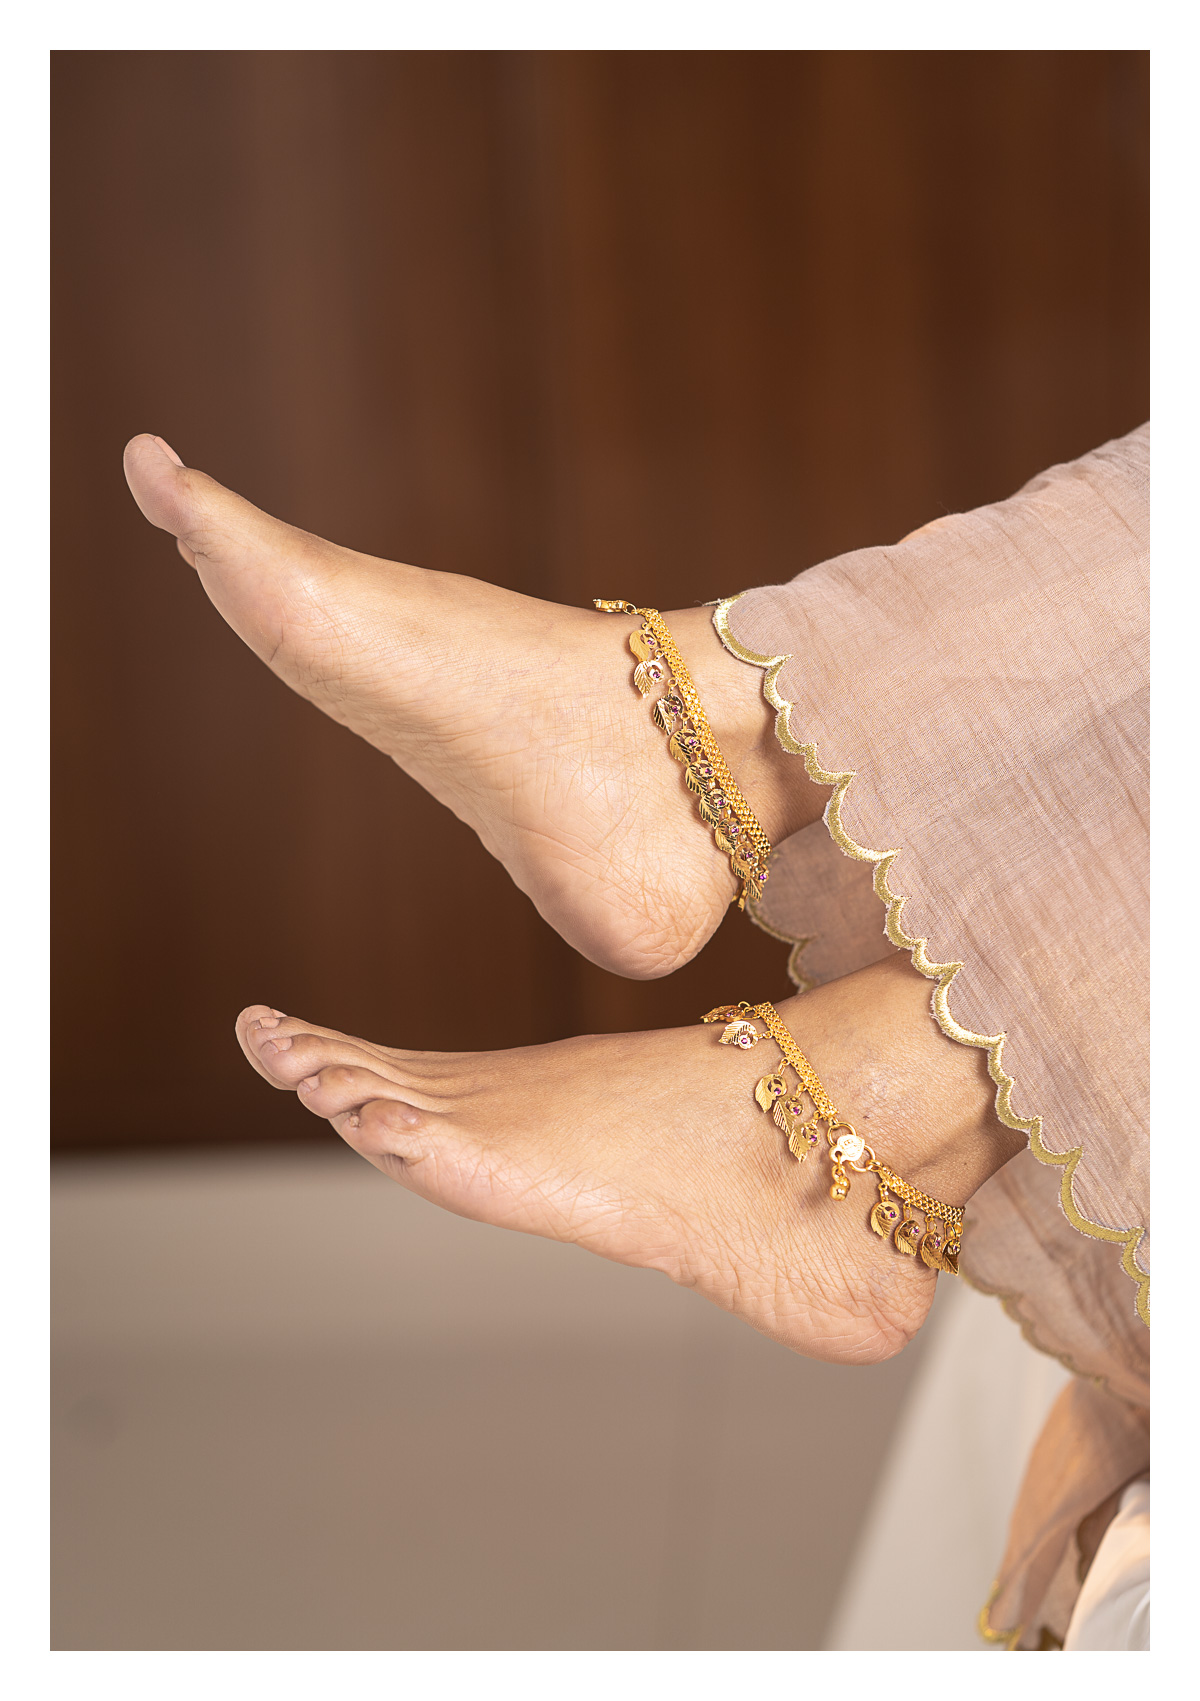 Gauri Gold Tone Silver Anklets